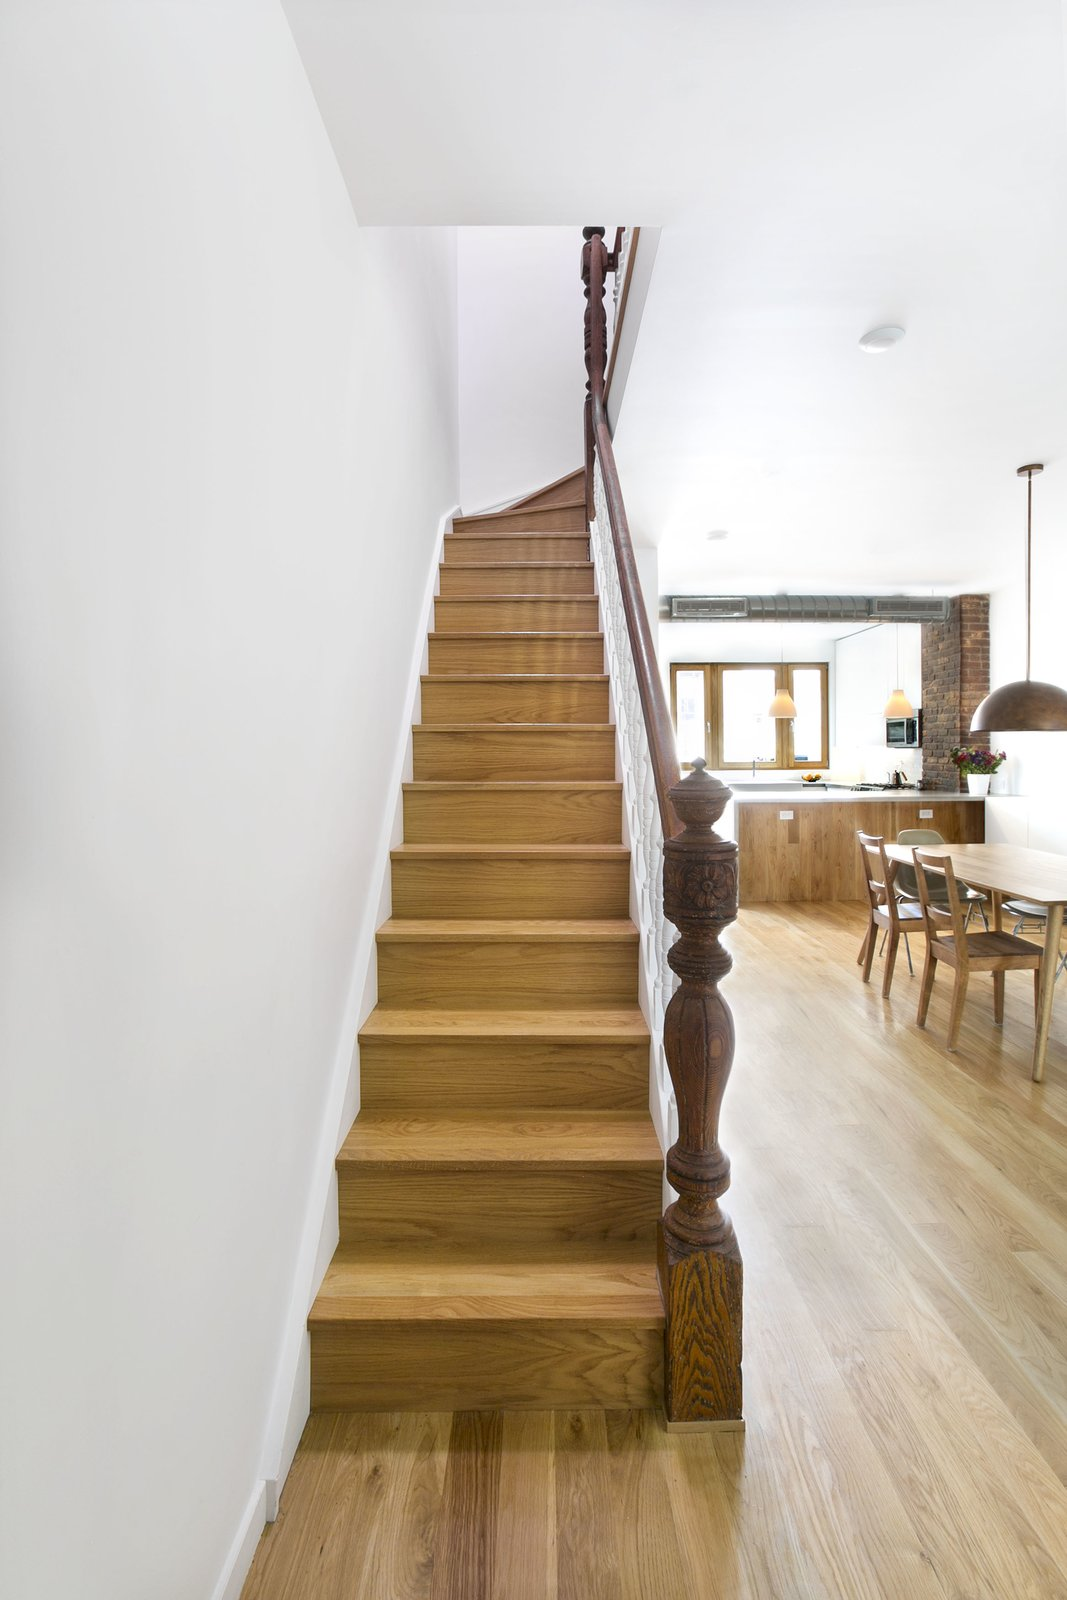 Stairs from parlor floor to second floor, with original railing. Tagged: Staircase, Wood Railing, and Wood Tread.  Sunset Park Row House by Ula Bochinska